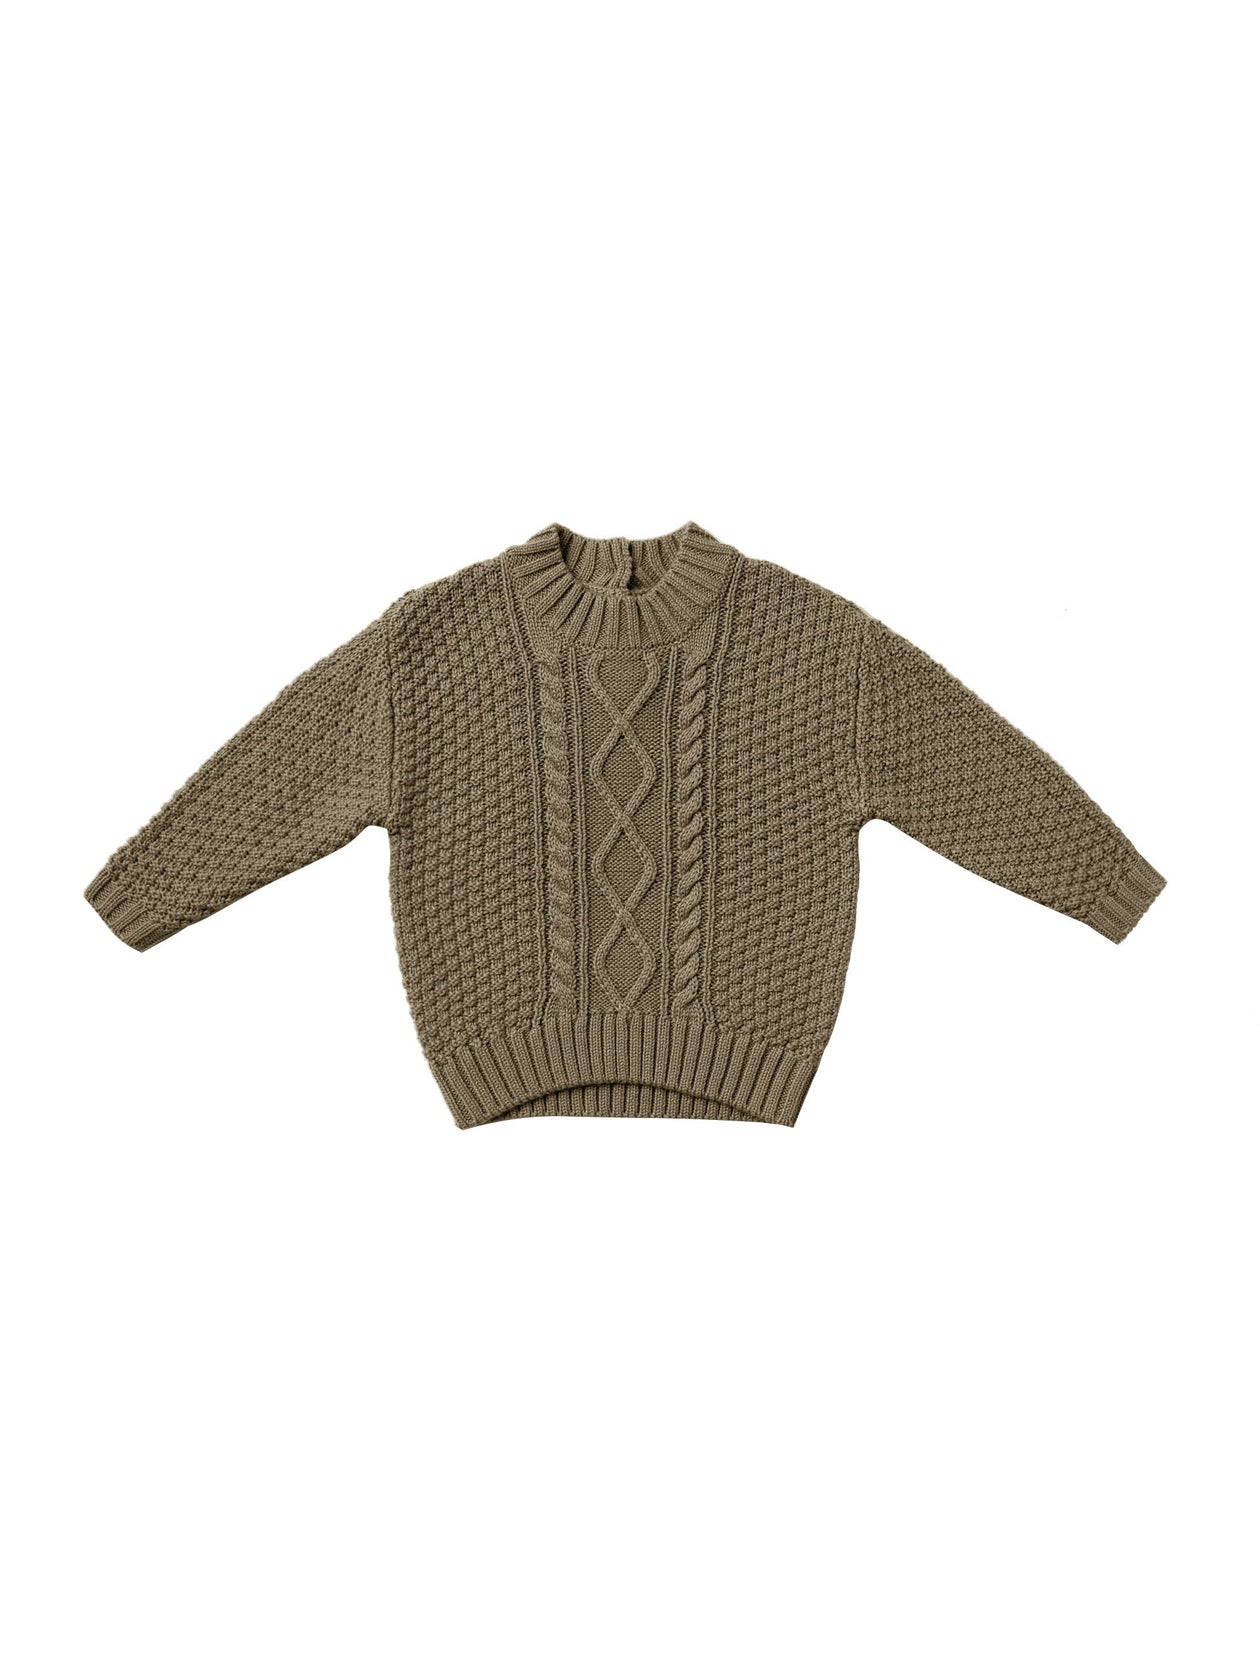 Quincy Mae Cable Knit Sweater Olive